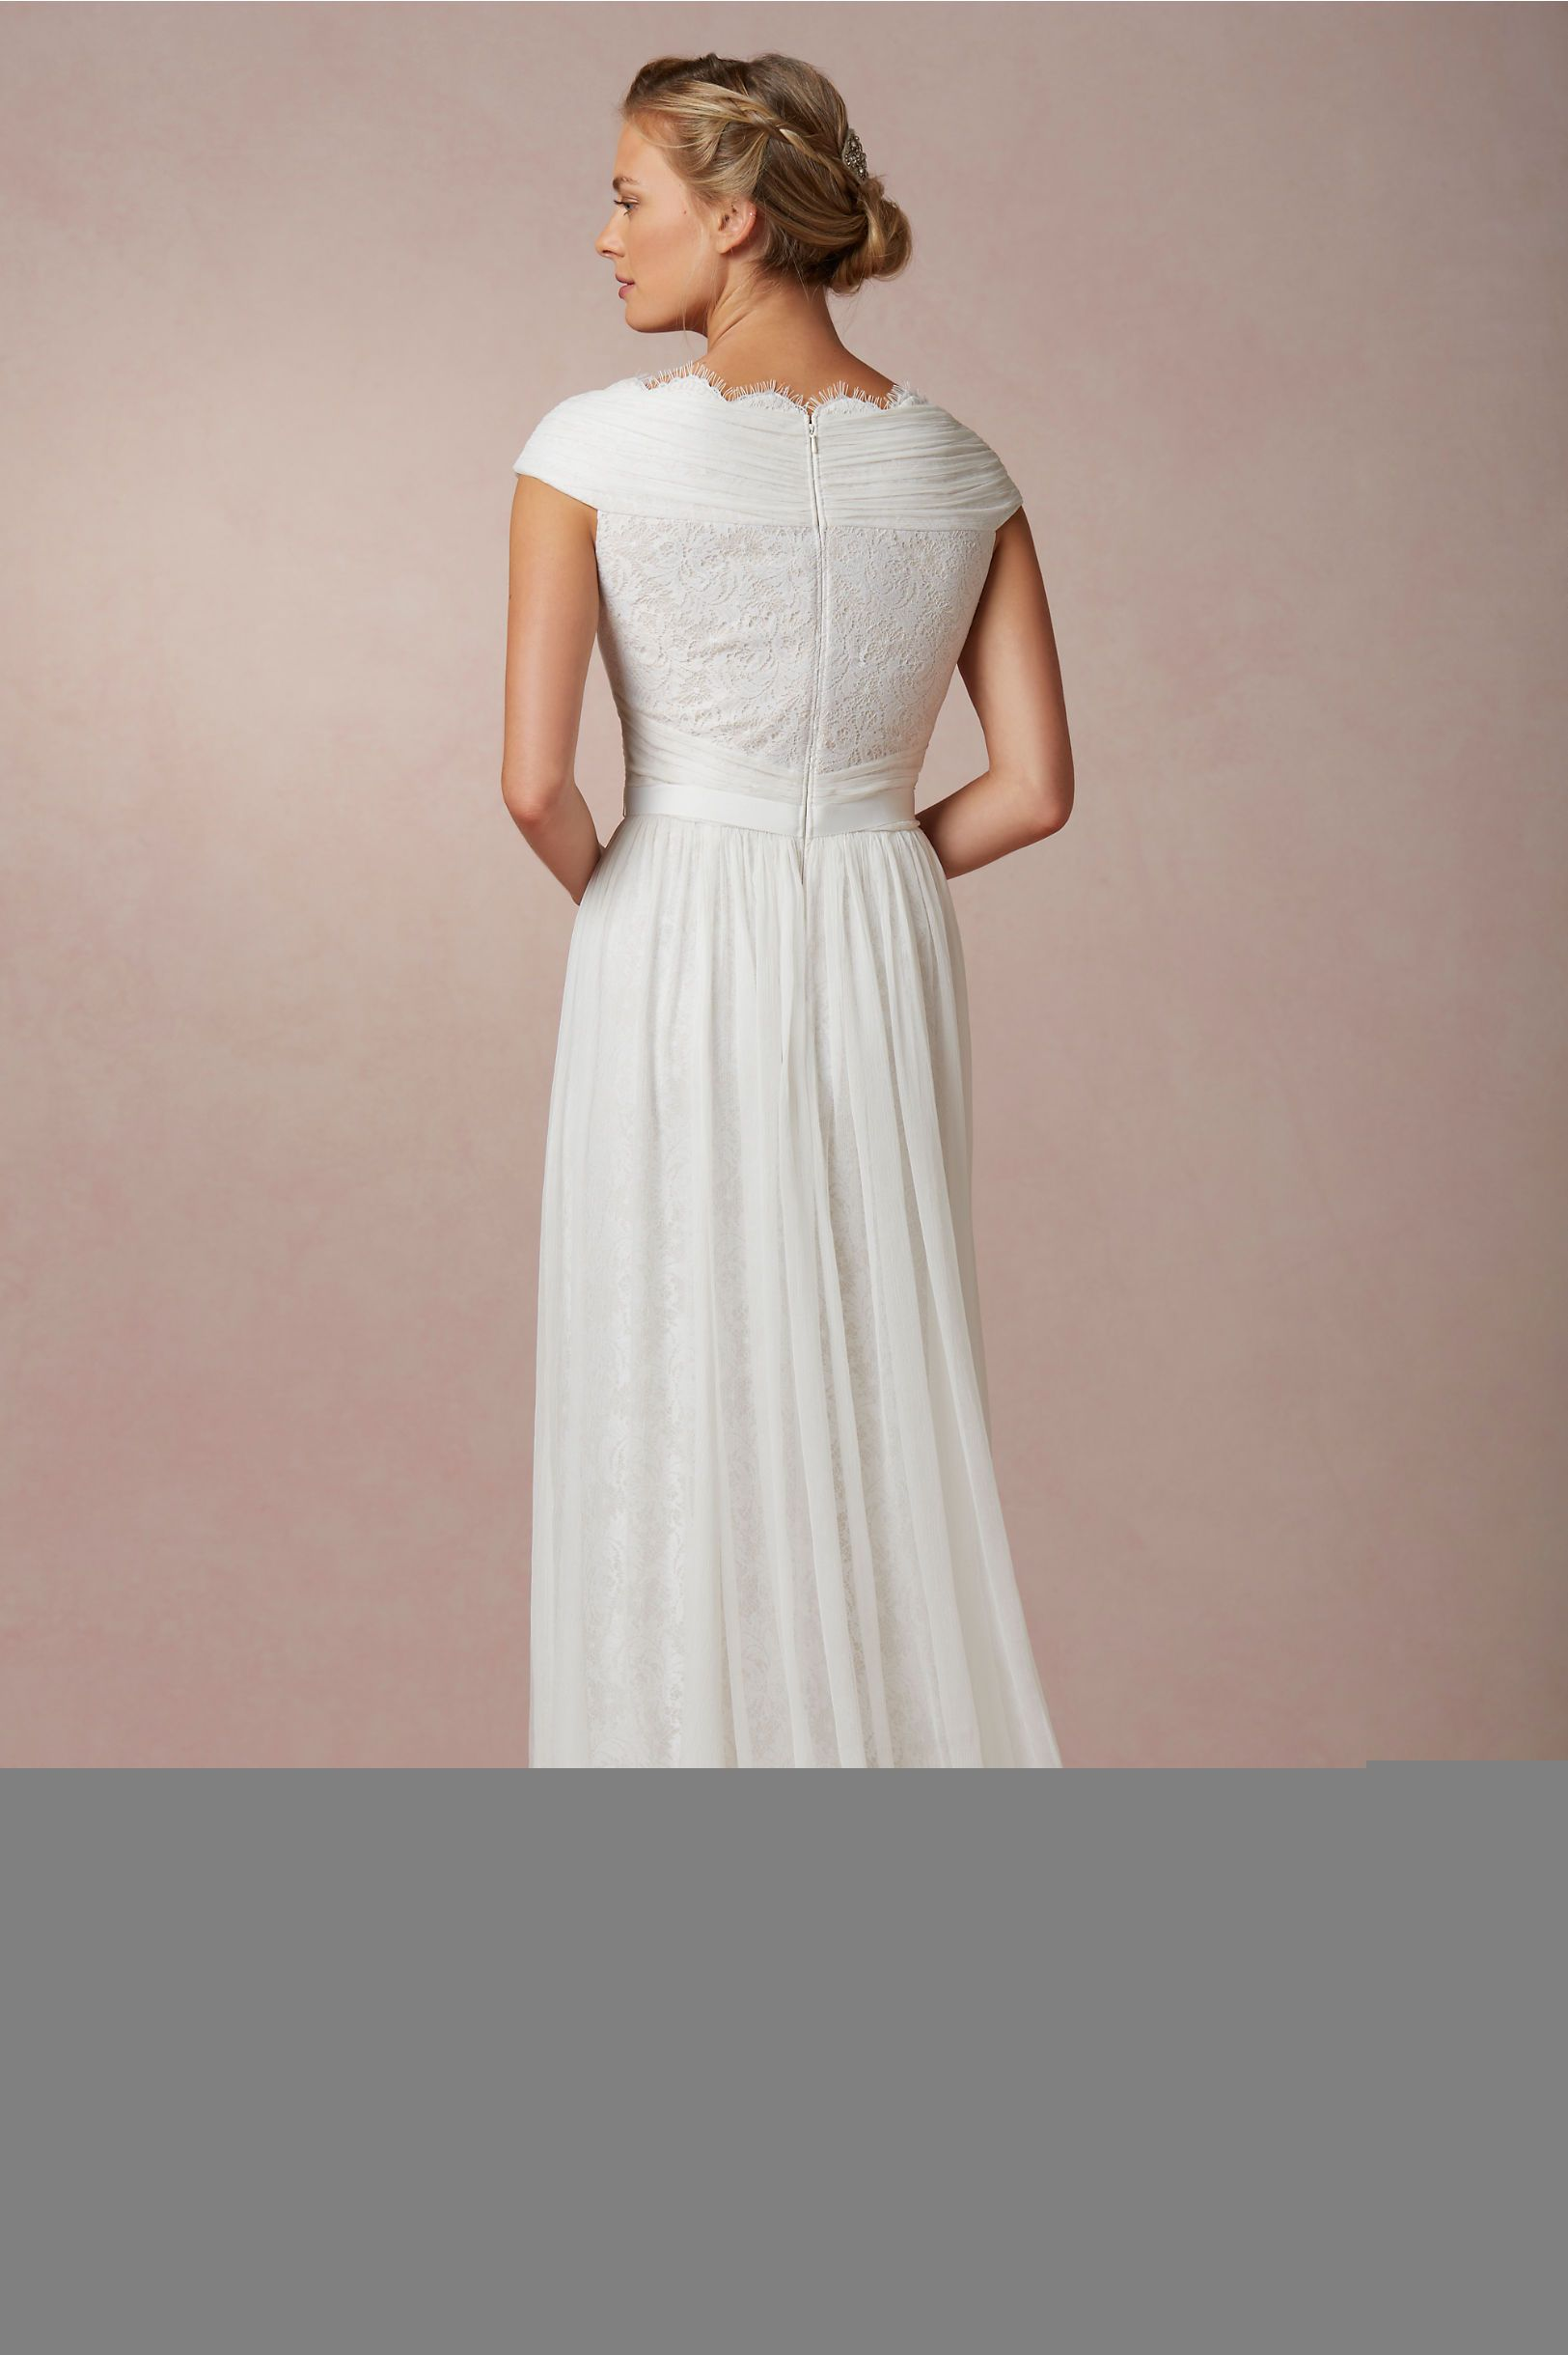 50 incredible nontraditional wedding dresses under 500